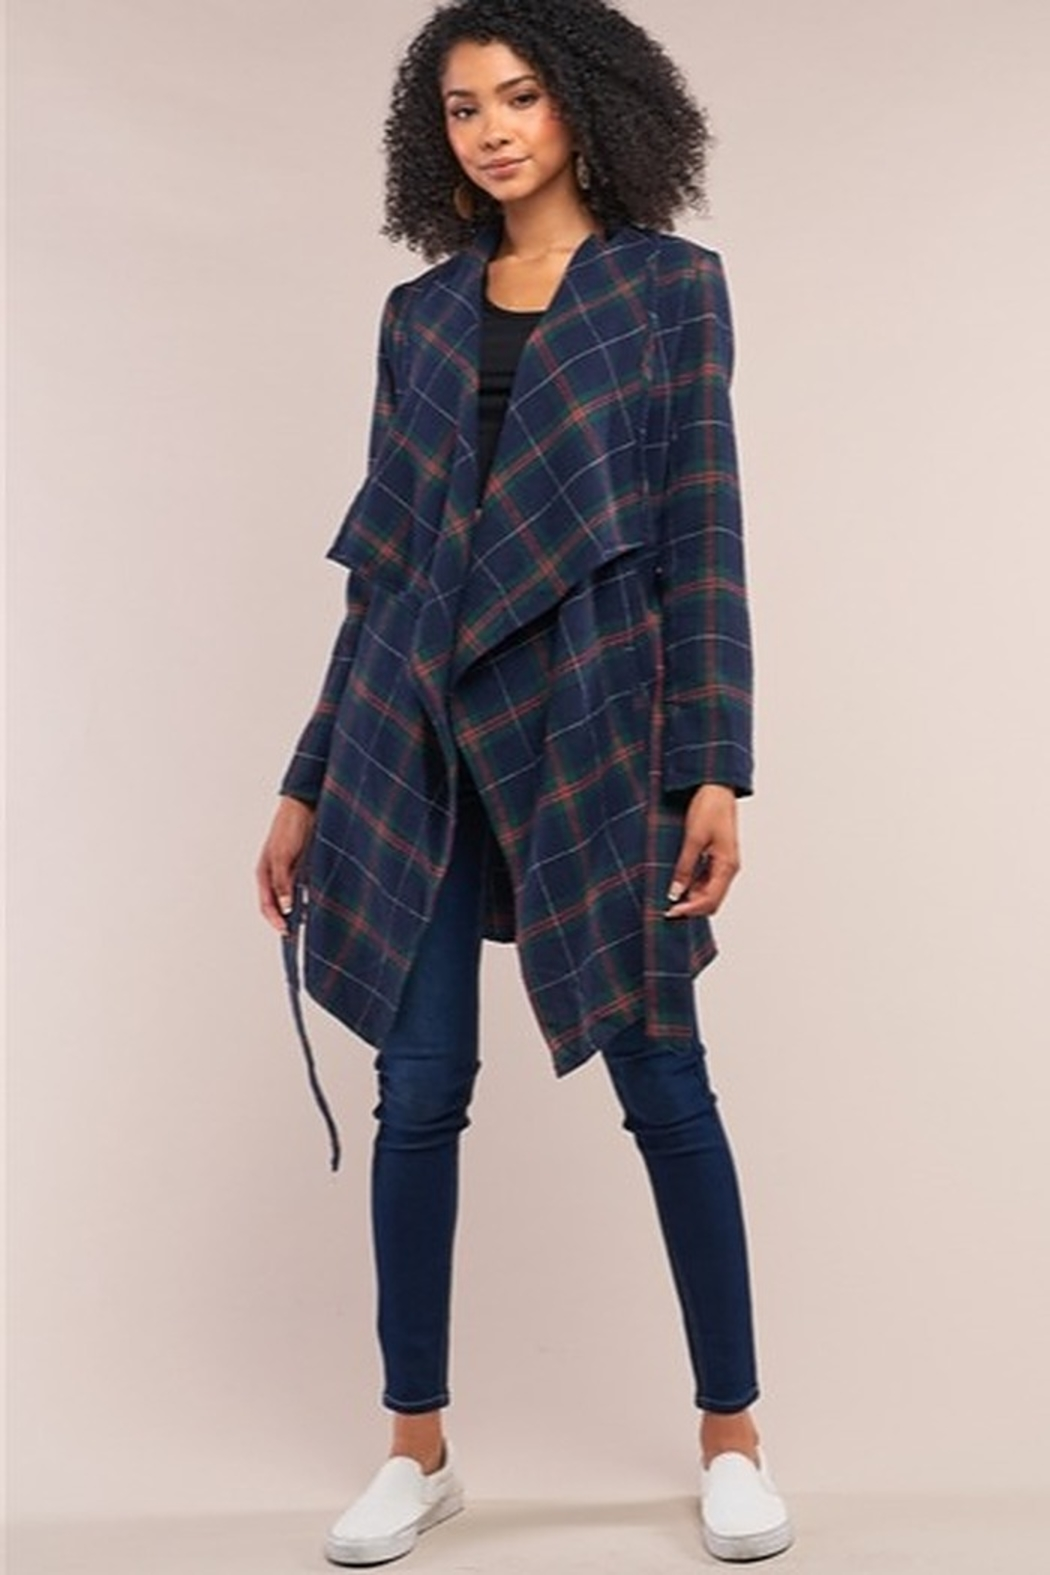 Tasha Apparel Sequoia Plaid Assymetrical Belted Coat - Side Cropped Image